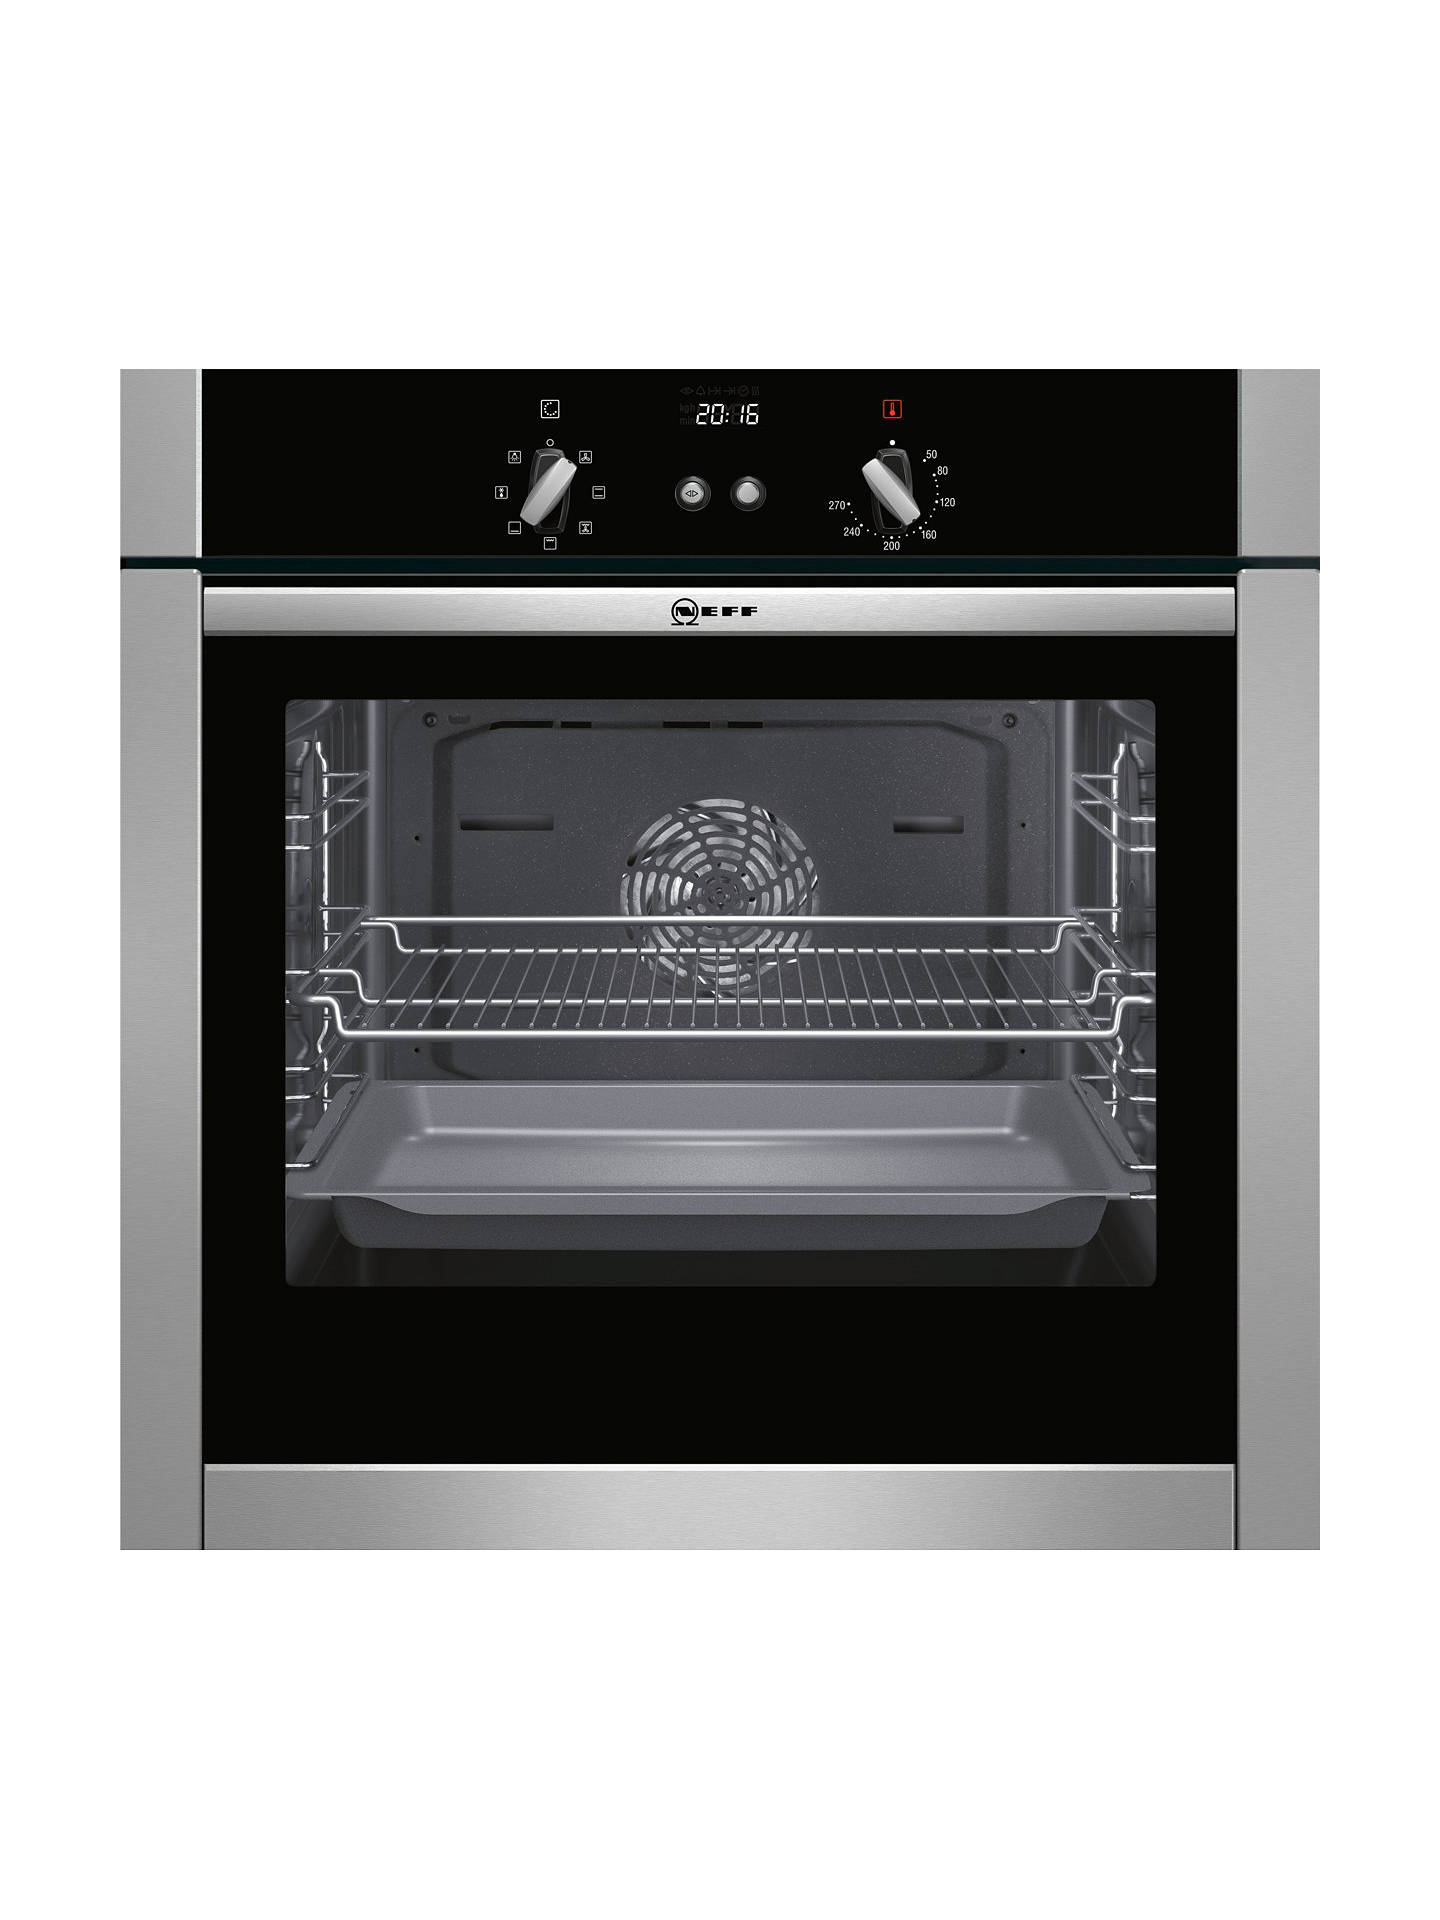 Neff B44m42n5gb Slide And Hide Built In Single Oven